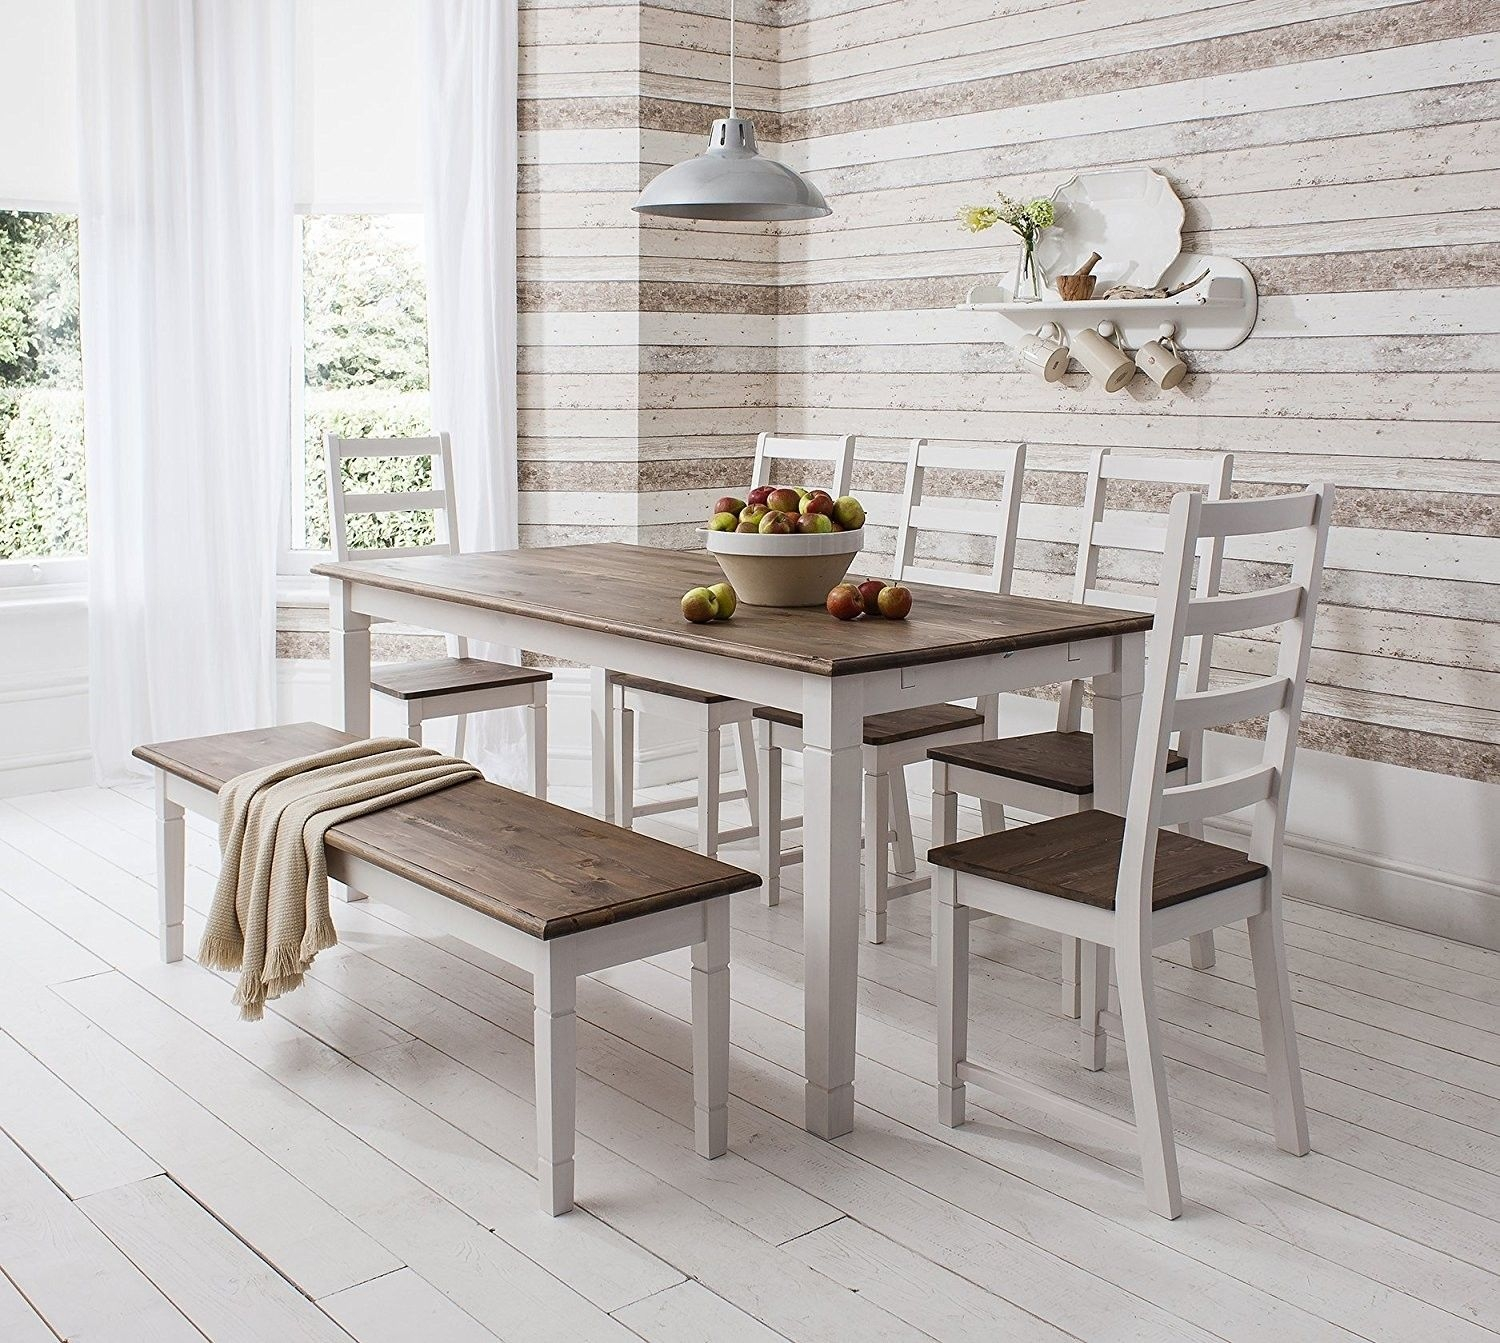 dining set with bench and chairs sundial accent tub chair table visual hunt canterbury white dark pine